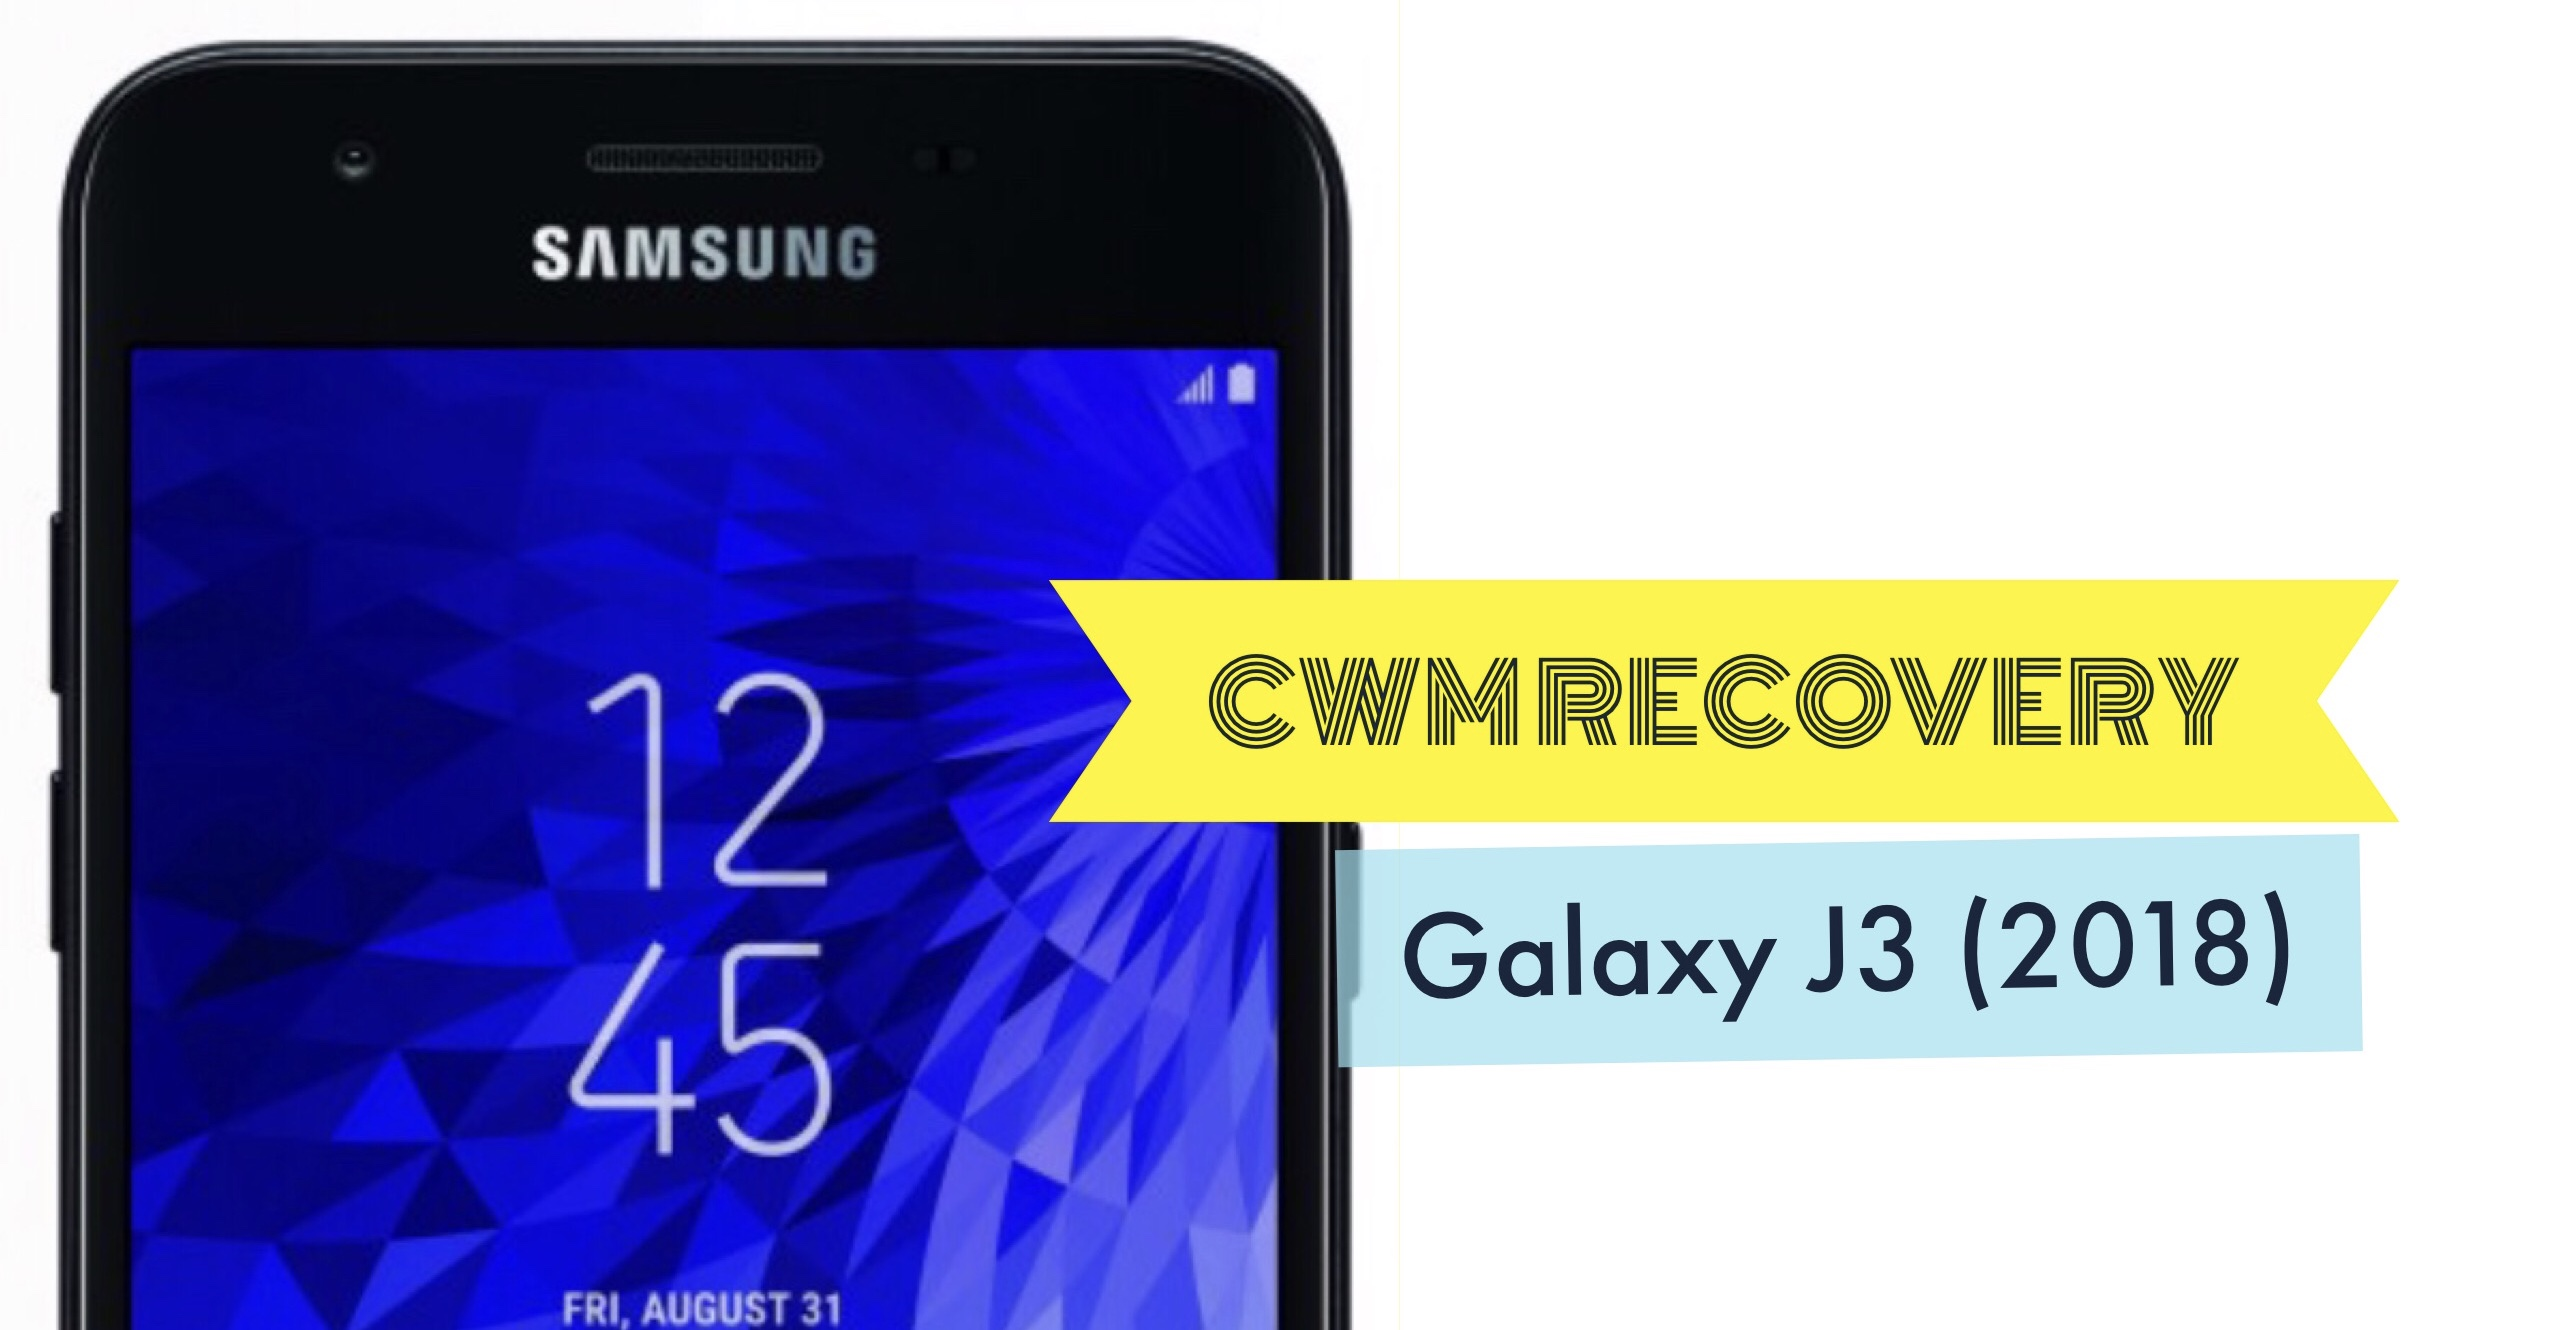 How to Install CWM Recovery on Galaxy J3 (2018): Two Methods